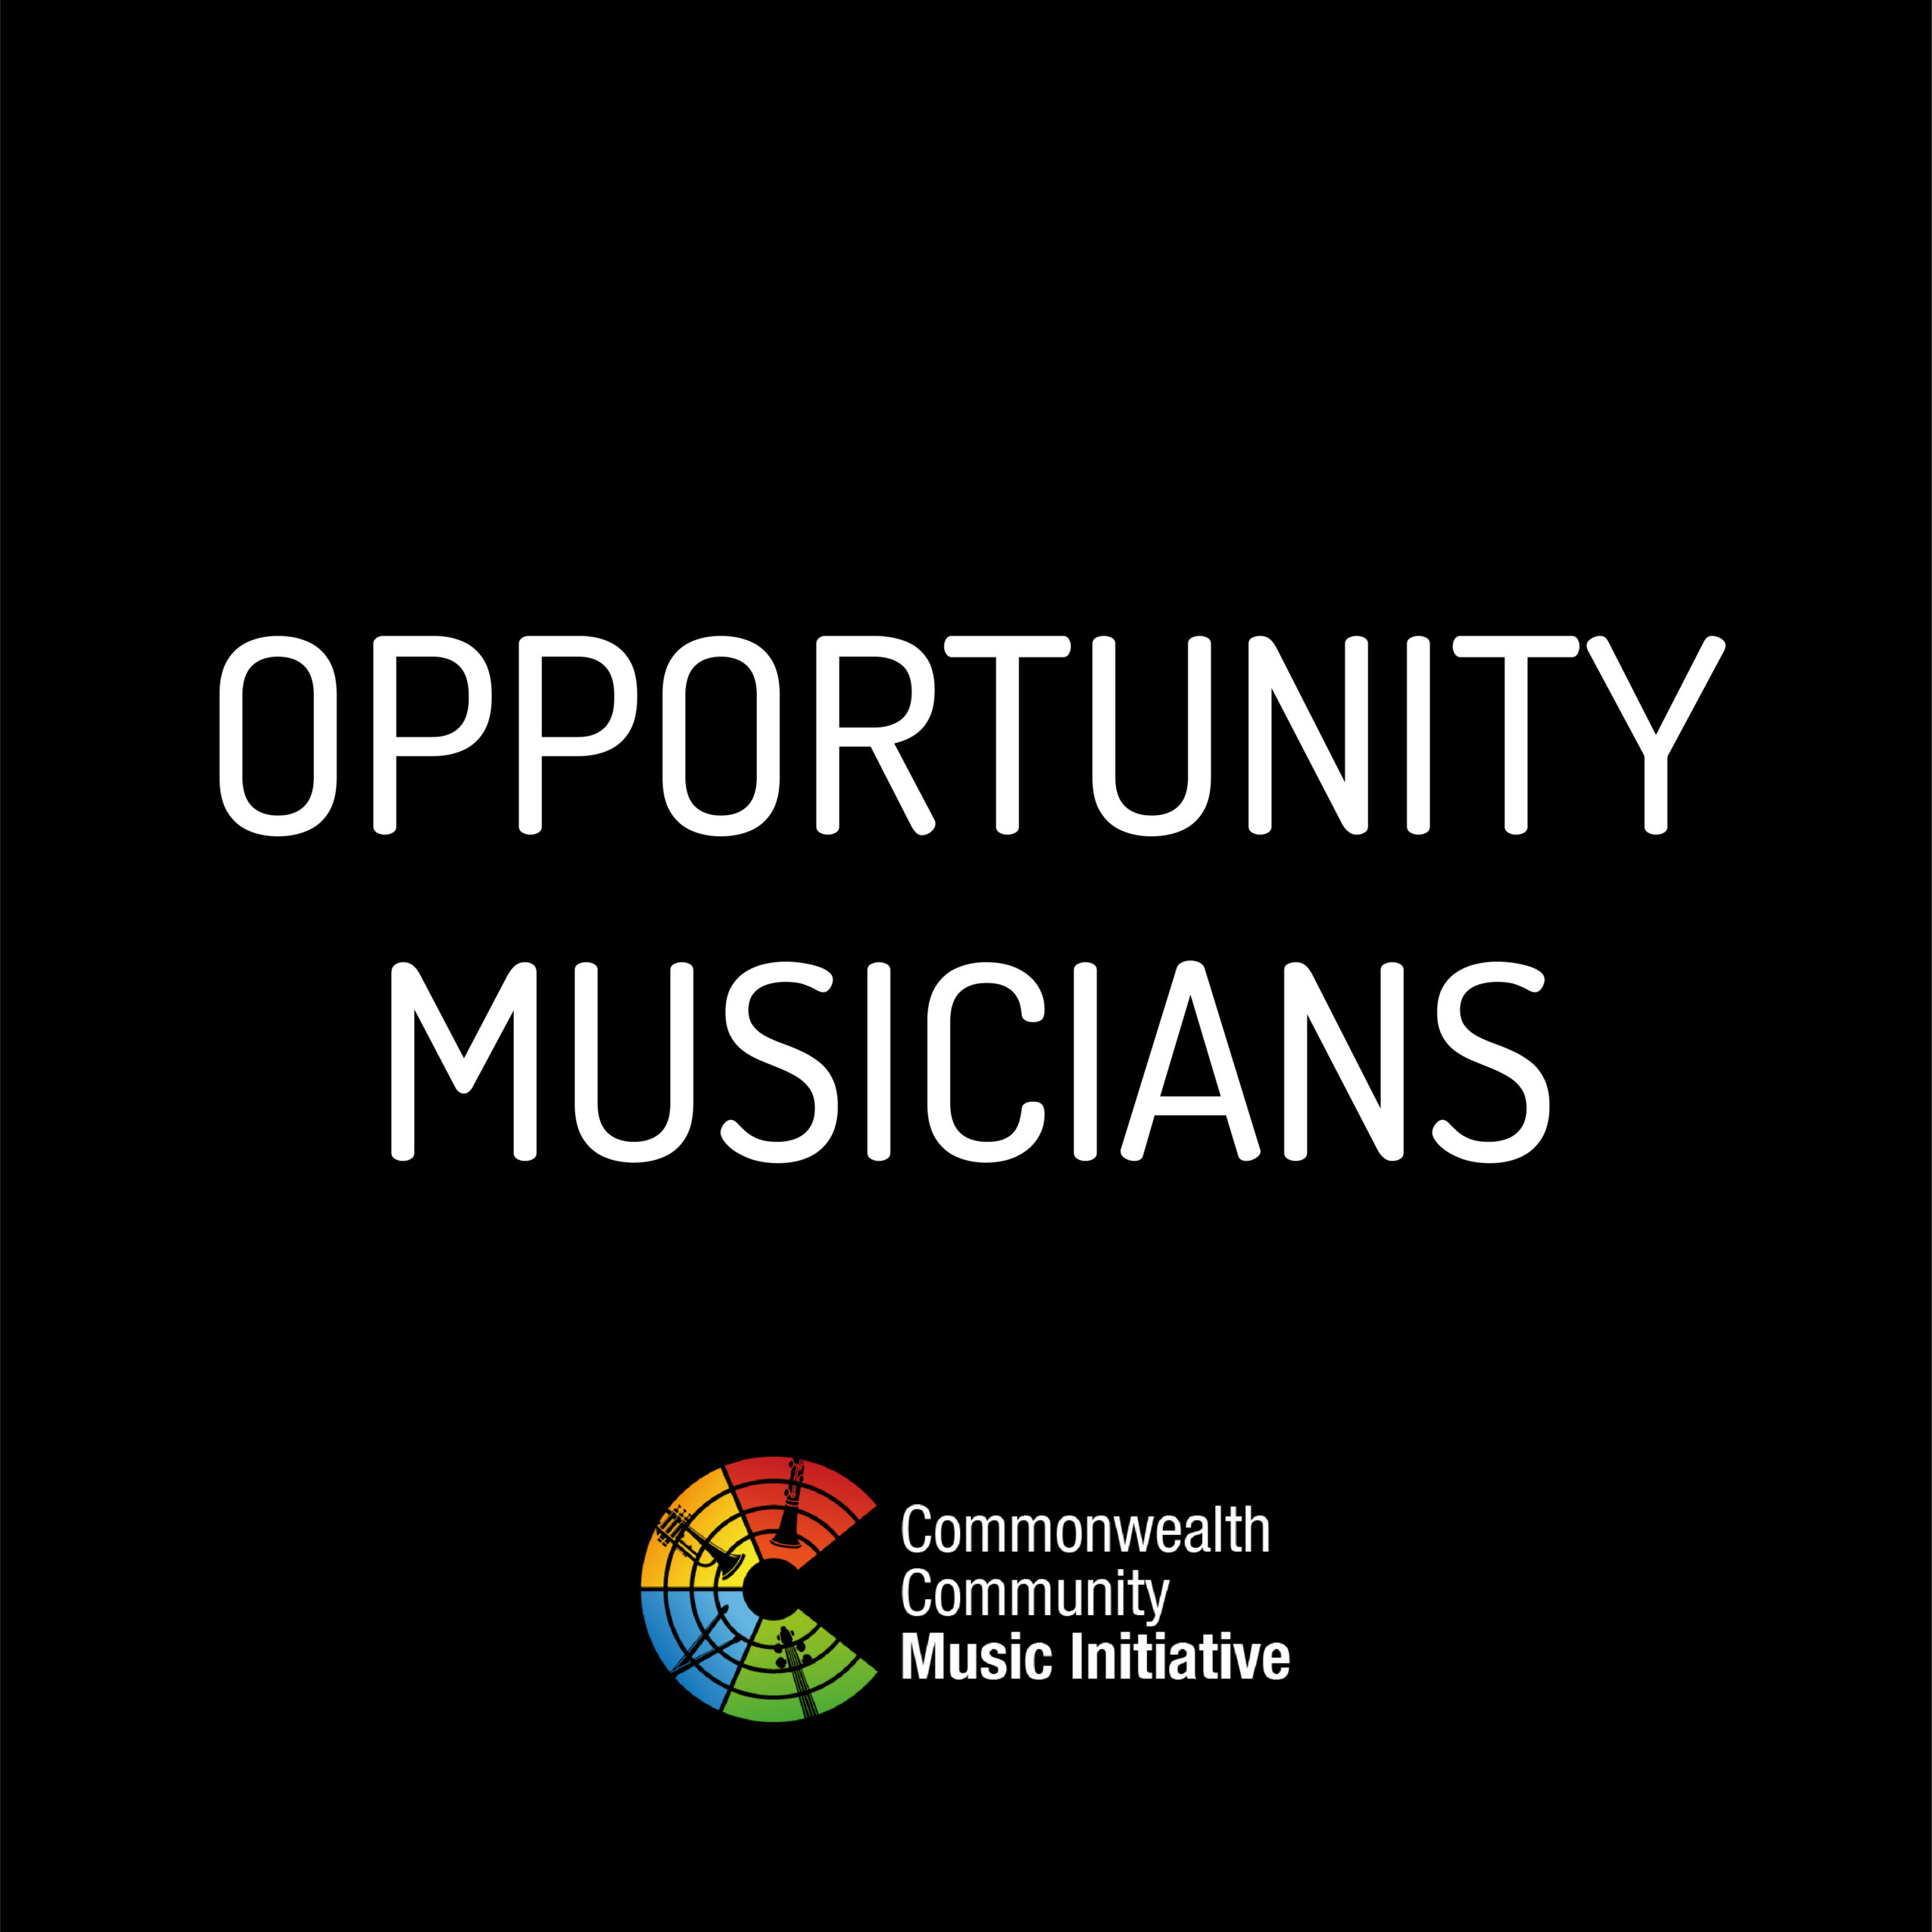 Commonwealth Community Music Initiative: Opportunity | Musicians